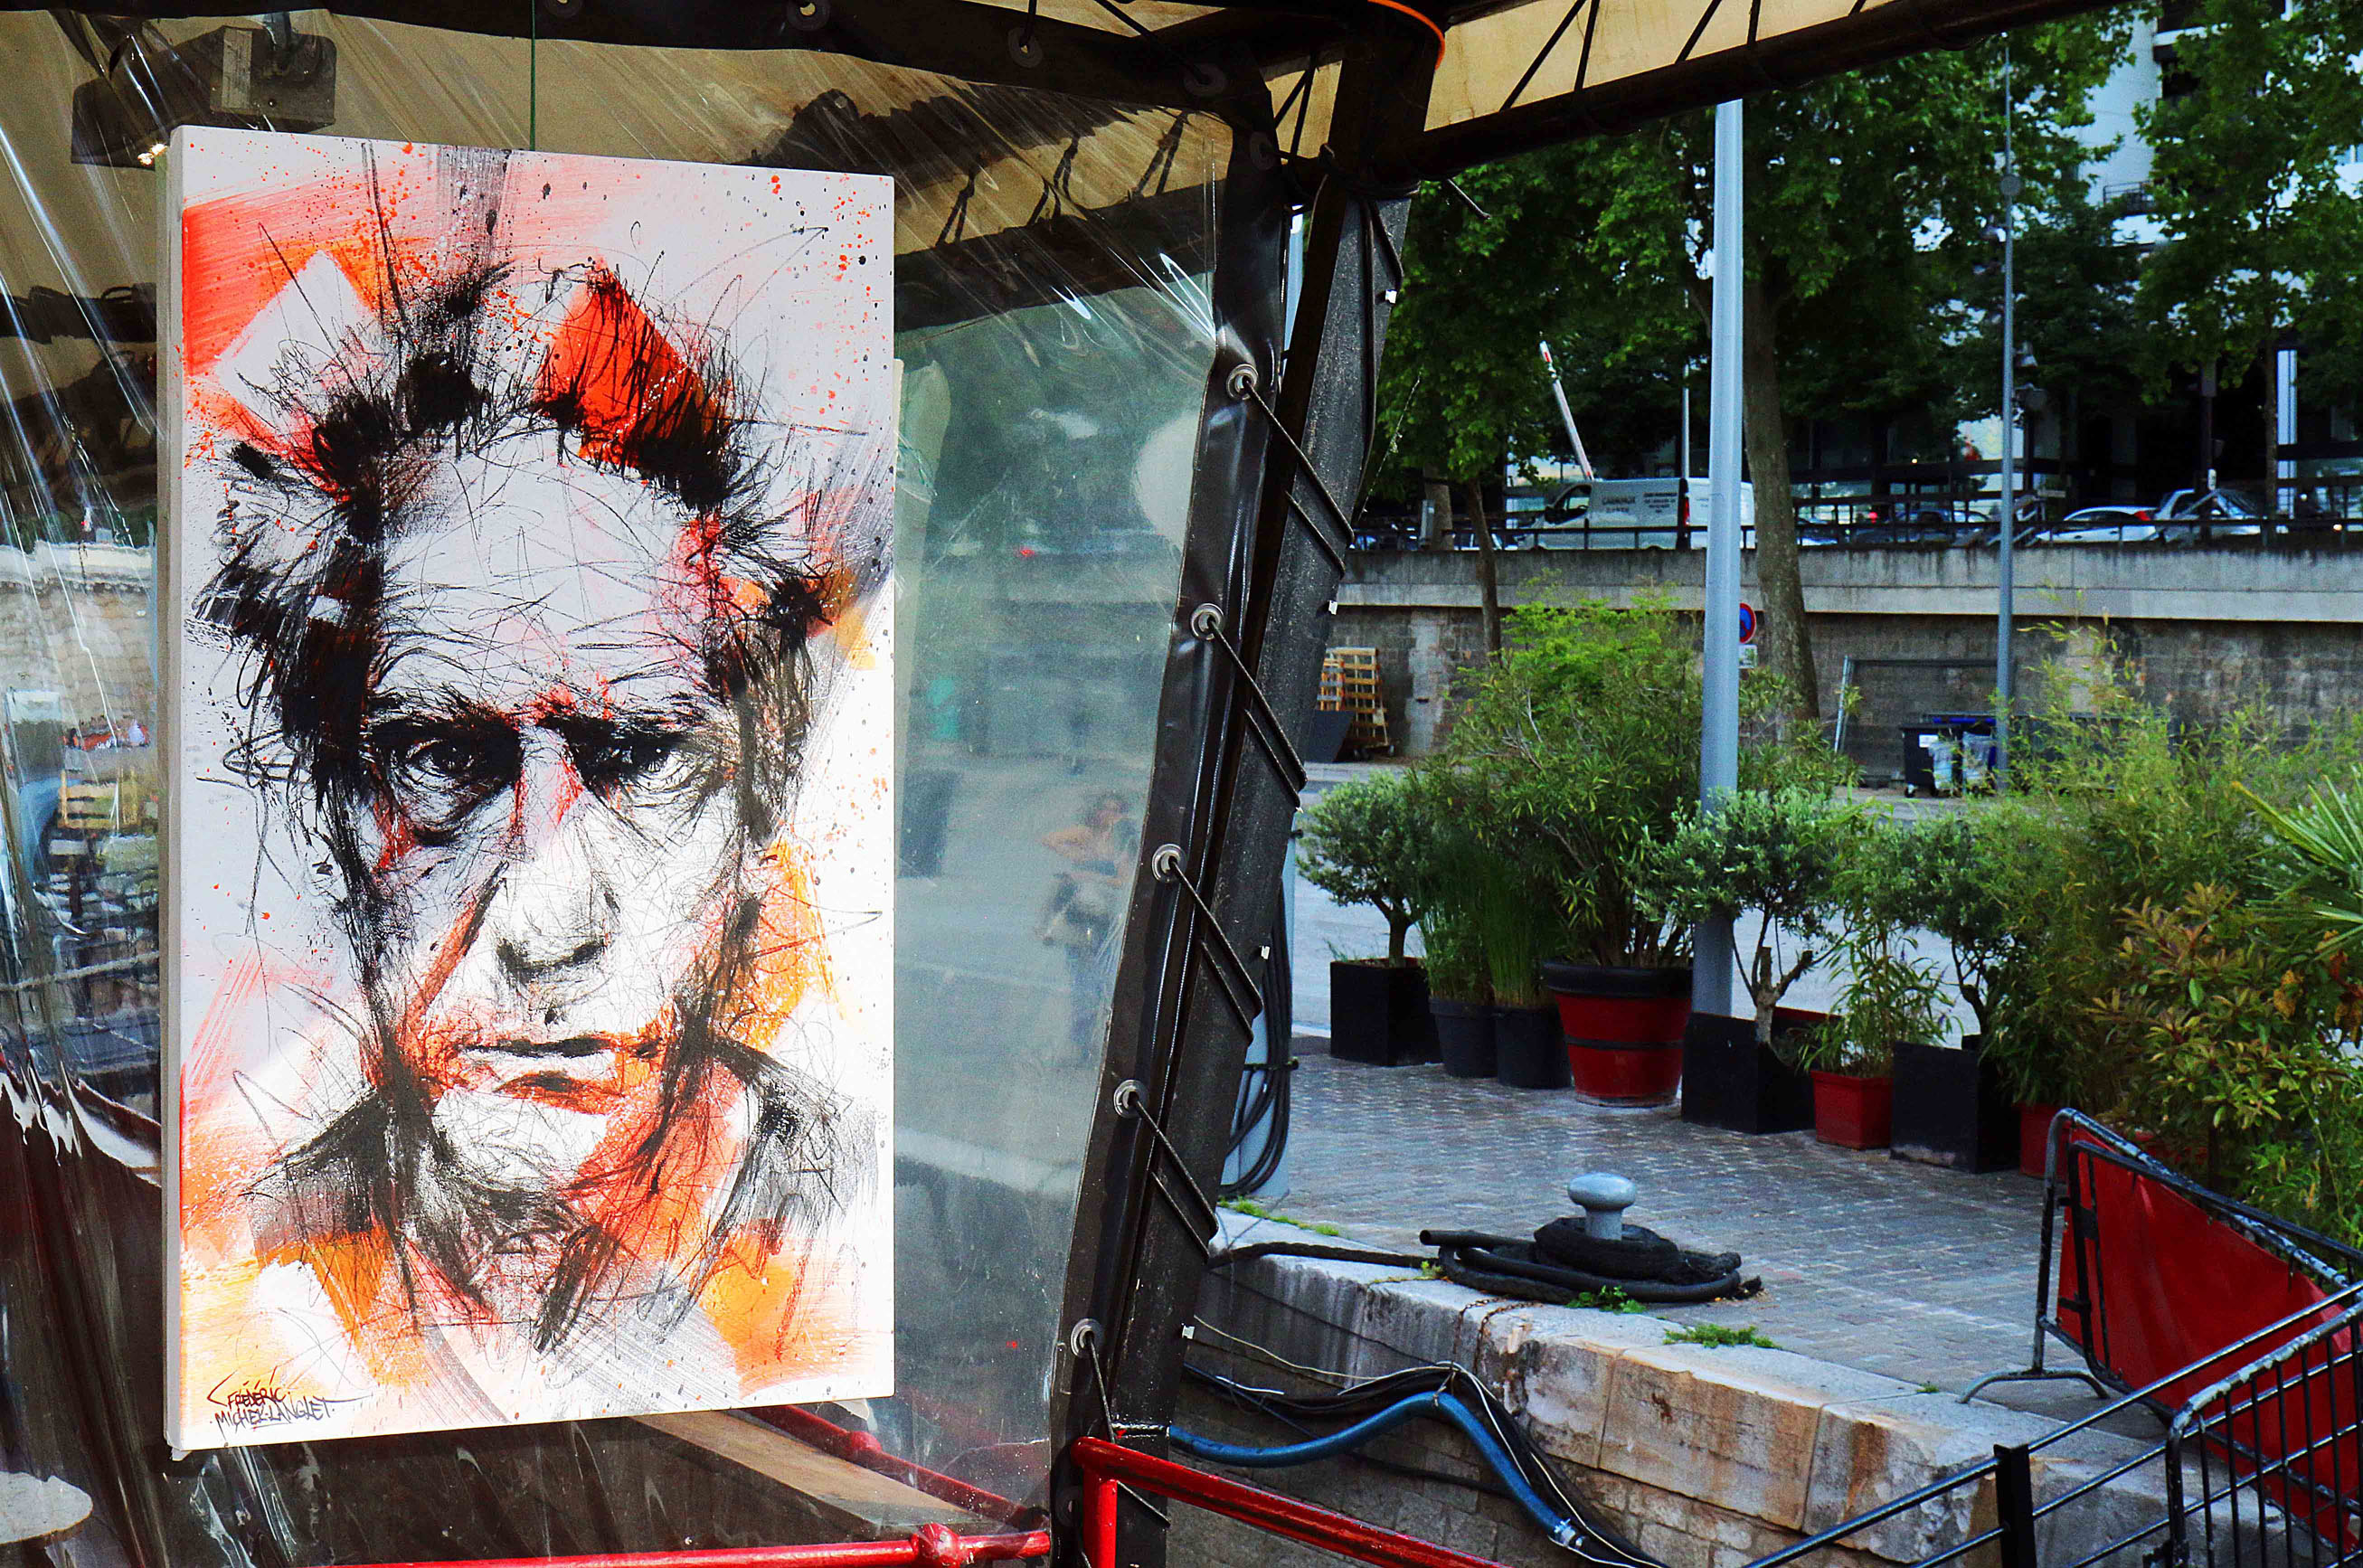 tableau de david cronenberg de l'expositions au batofar à paris